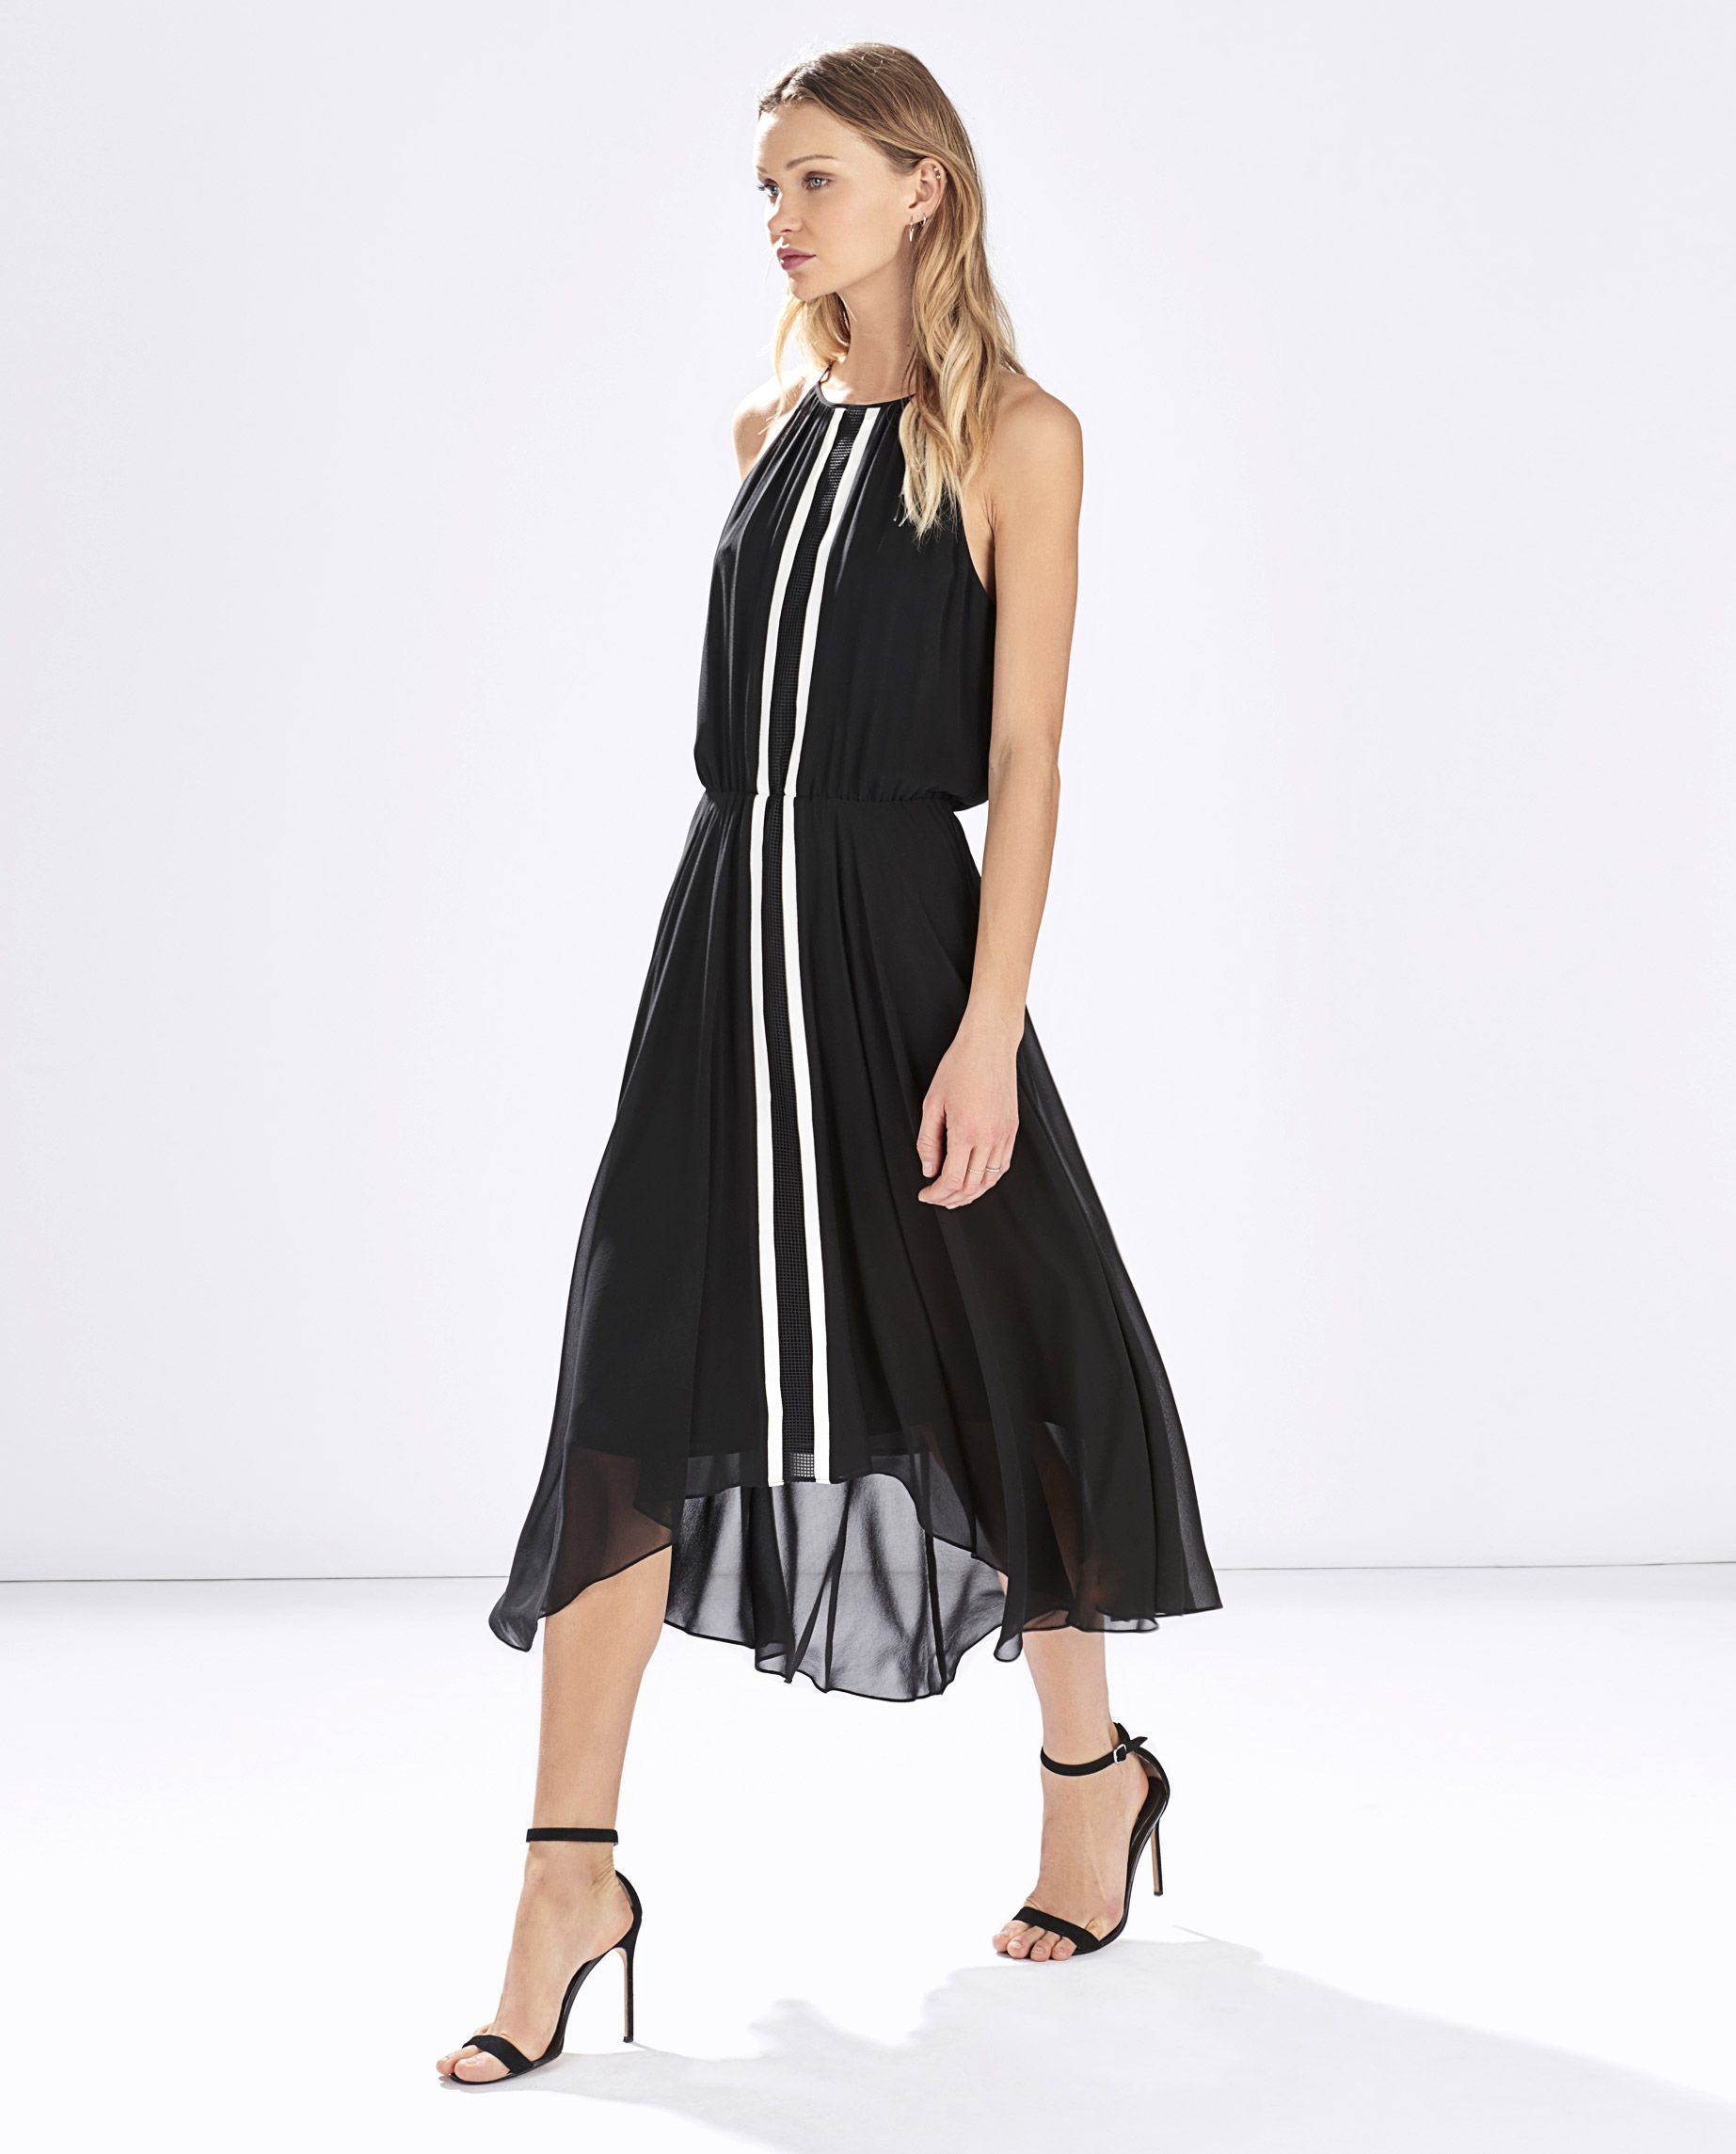 2818d317f4b6 Macedonia Dress. Beautiful flowy midi dress in black with white stripes.  Makes you look slim and tall.